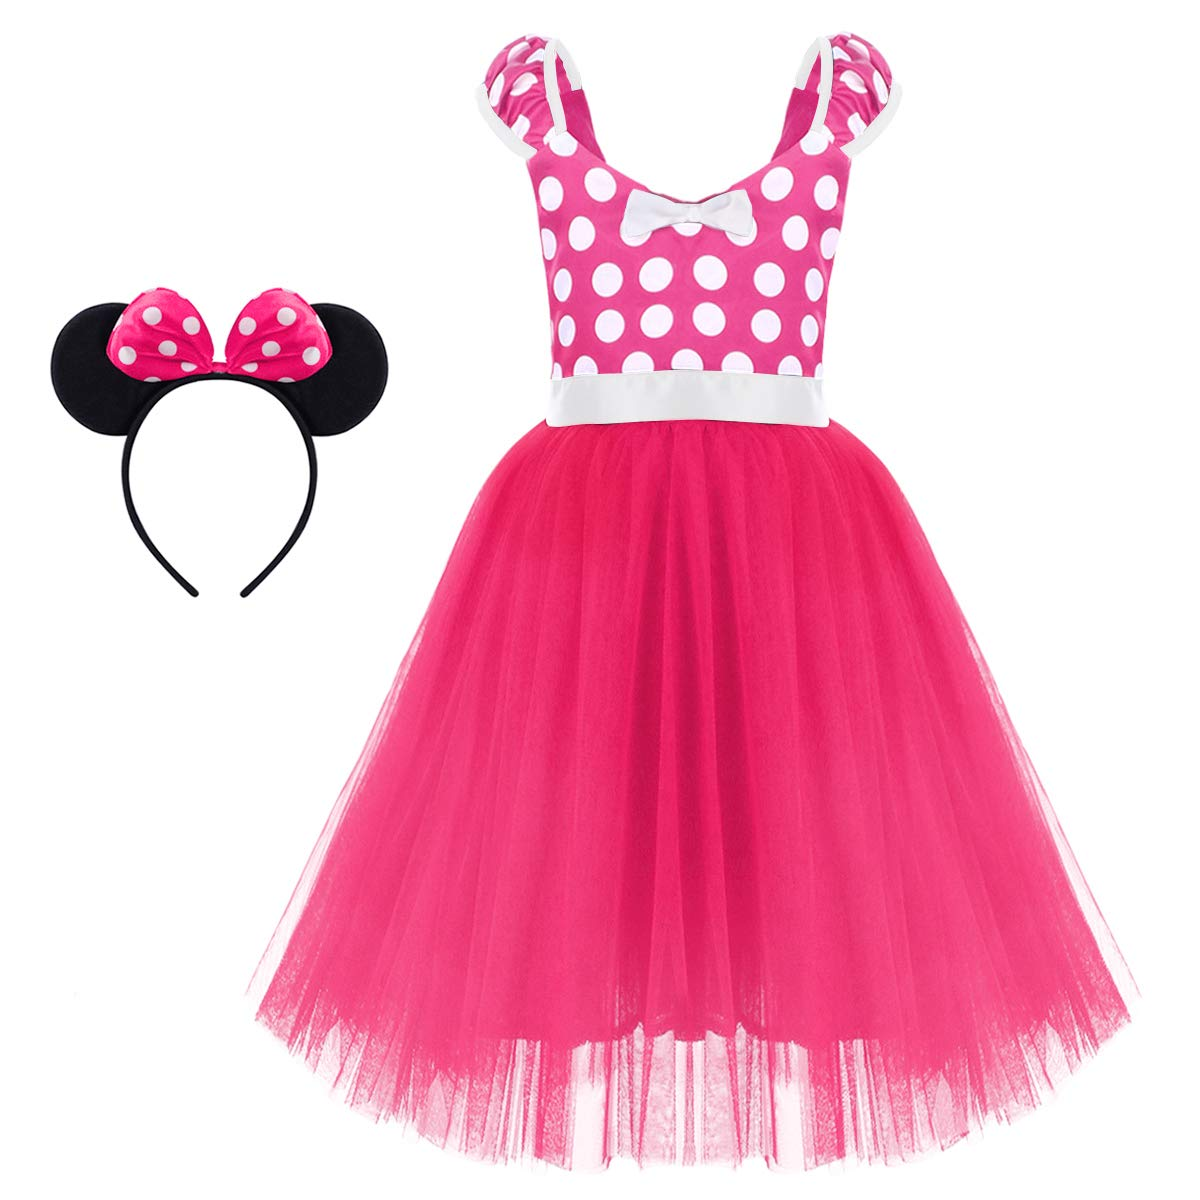 b45194981 Amazon.com: Girls Christmas Polka Dots Bowknot Princess Tutu Dress Birthday  Party Cosplay Pageant Fancy Costume Mouse Headband Outfits: Clothing